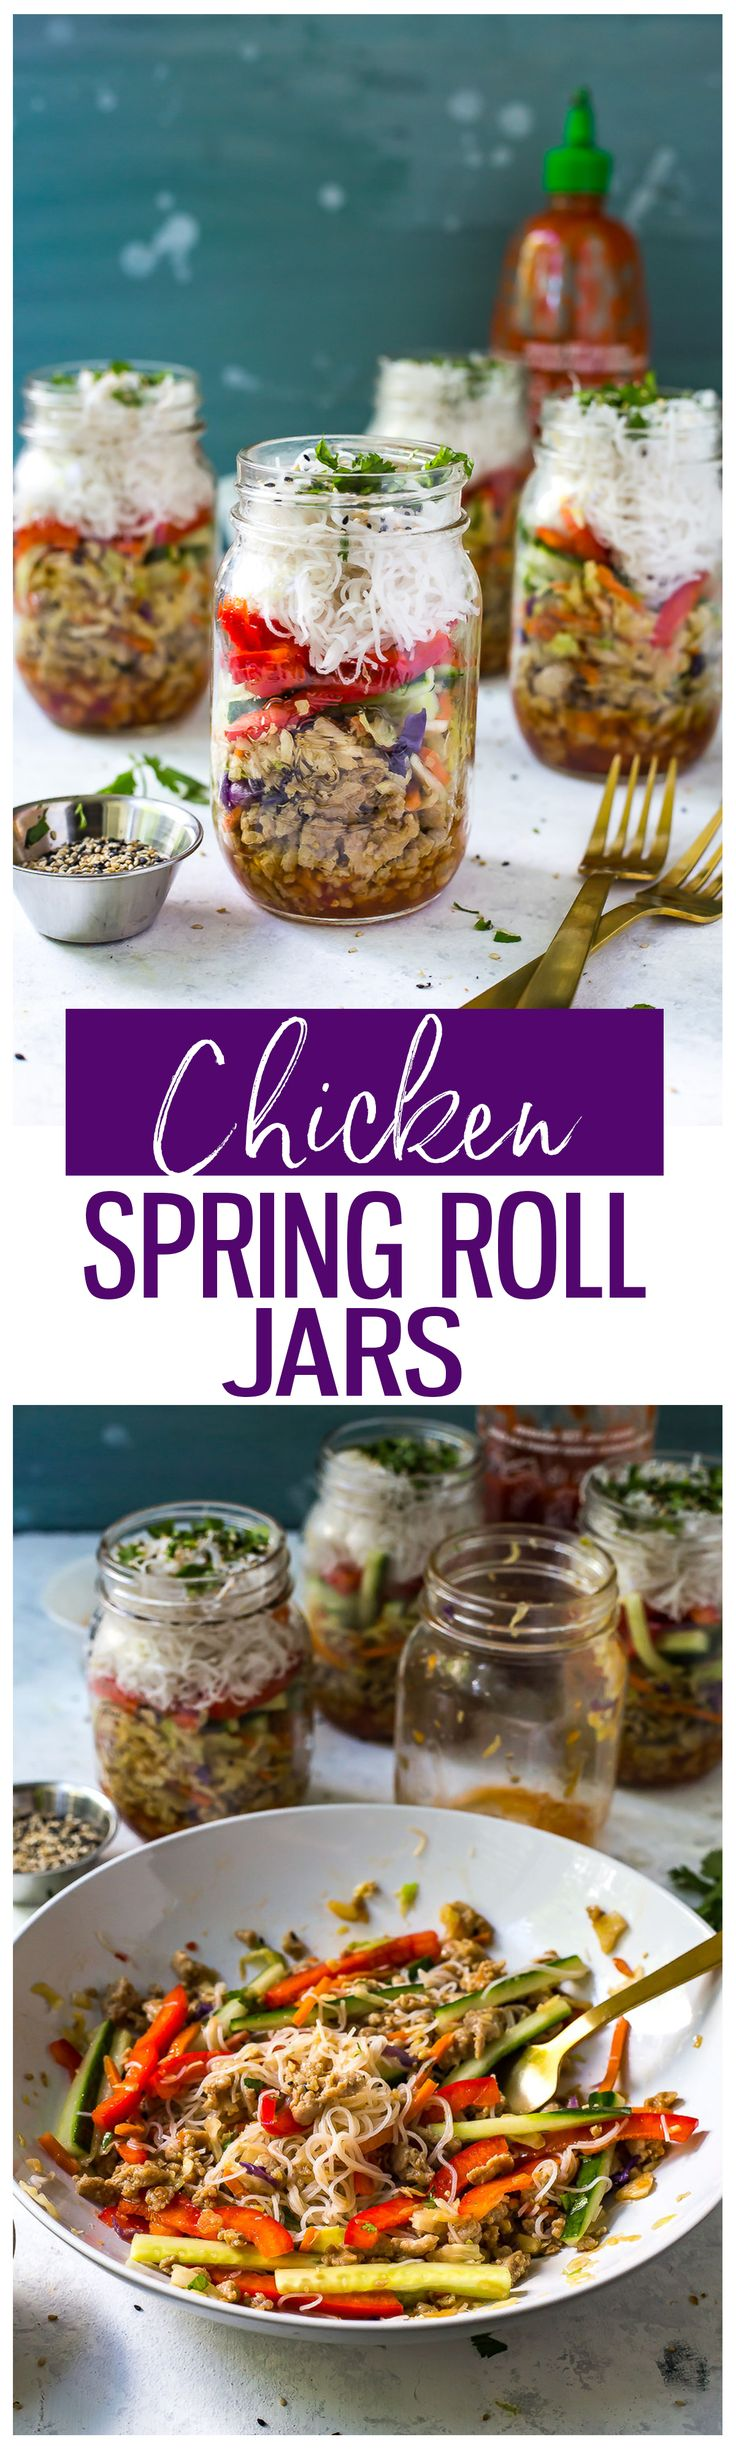 TheseQuick & Easy Chicken Spring Roll Jars are the perfect grab and go lunch. Assemble the noodles, ground chicken & veggies ahead of time andadd a little sweet chili sauce for some kick!